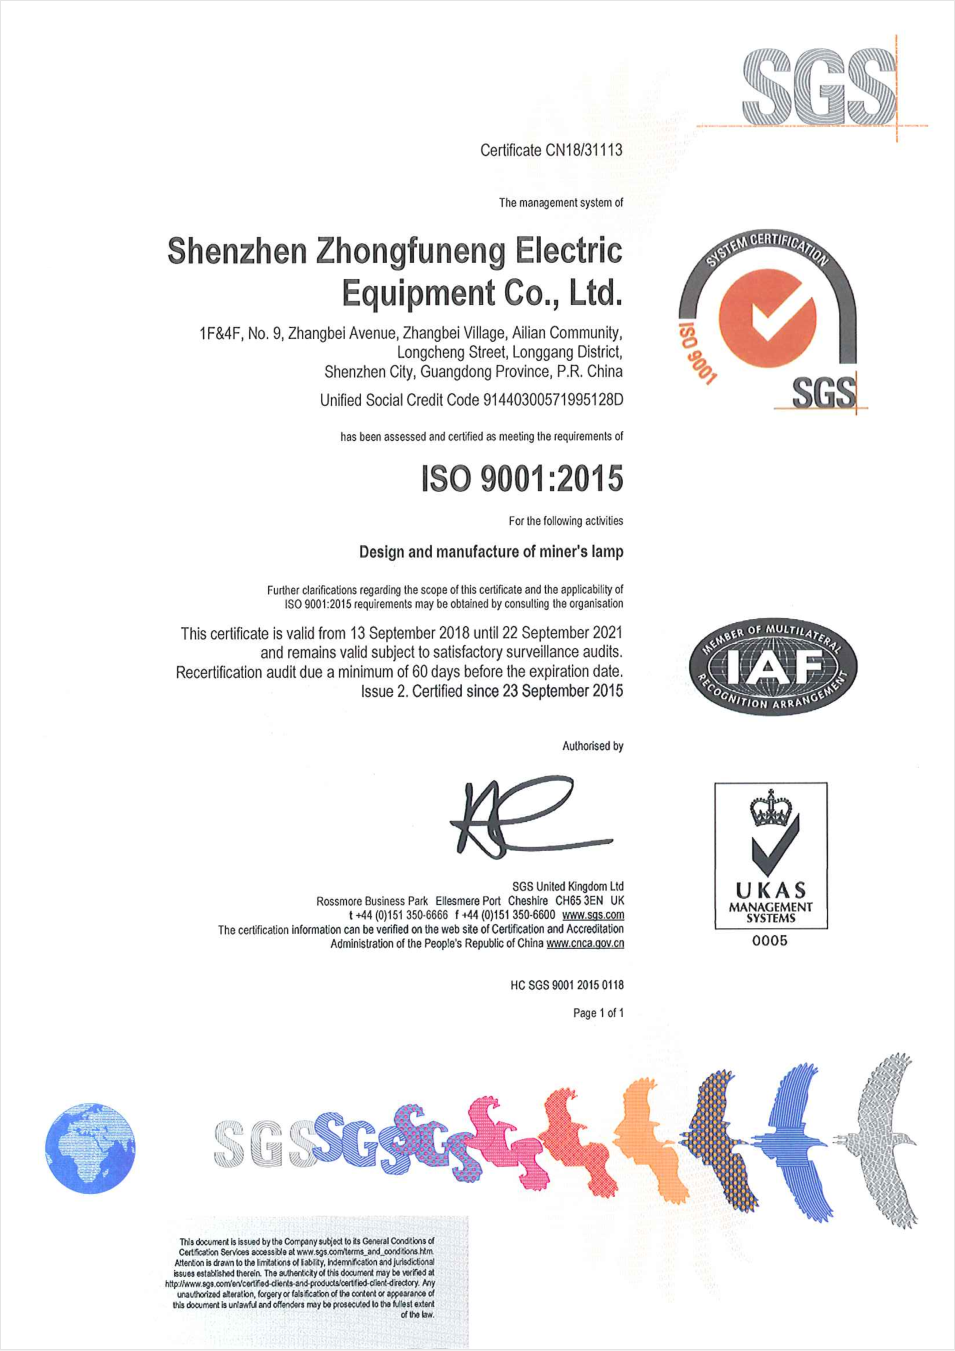 WISDOM has Got ISO9001:2015 Certificates Issued by SGS